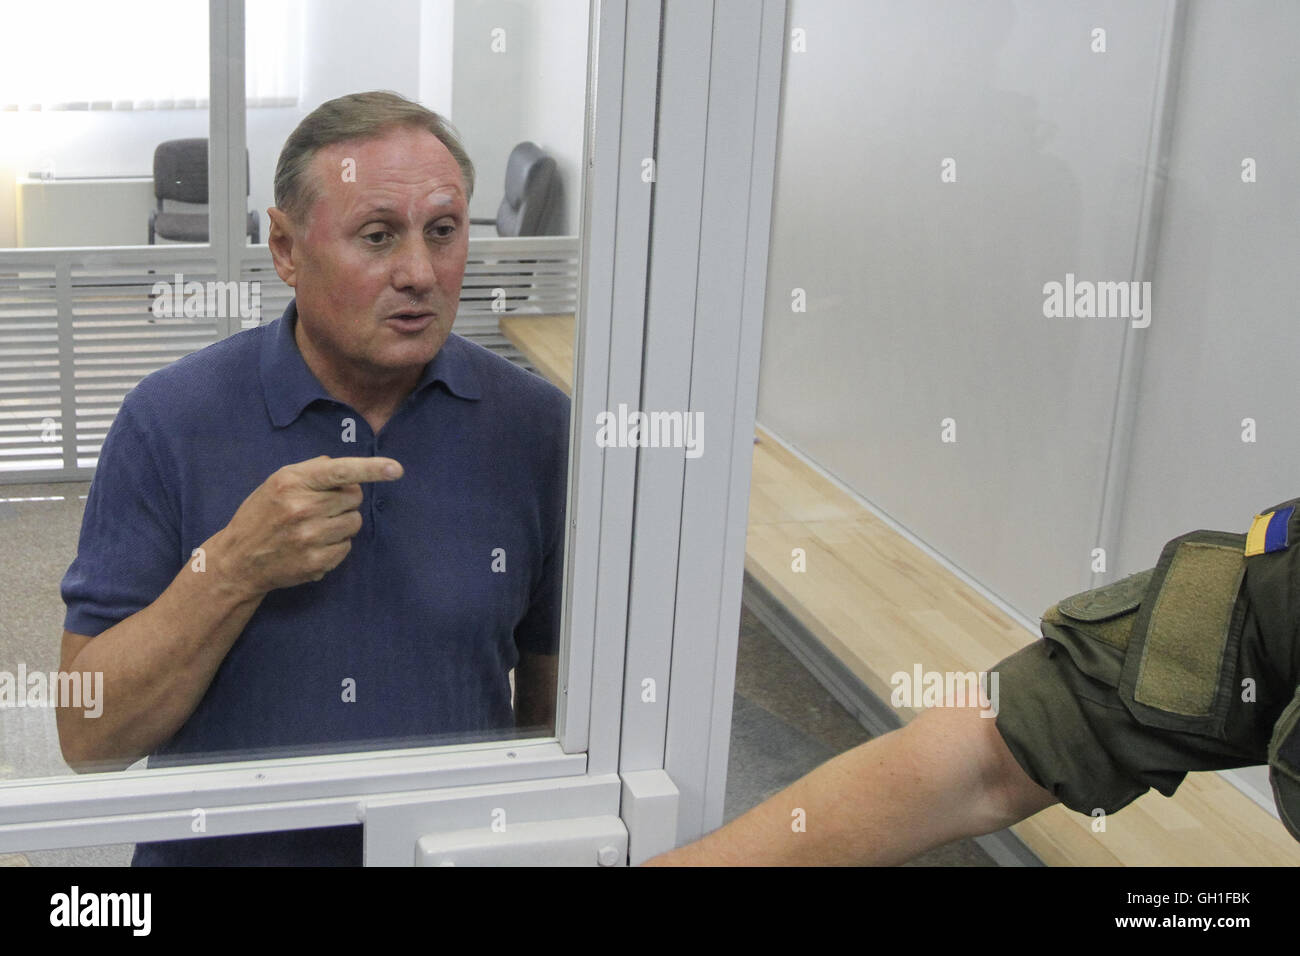 August 8, 2016 - Kyiv, Ukraine - Former head of the Party of Regions faction in parliament ALEKSANDR YEFREMOV is - Stock Image